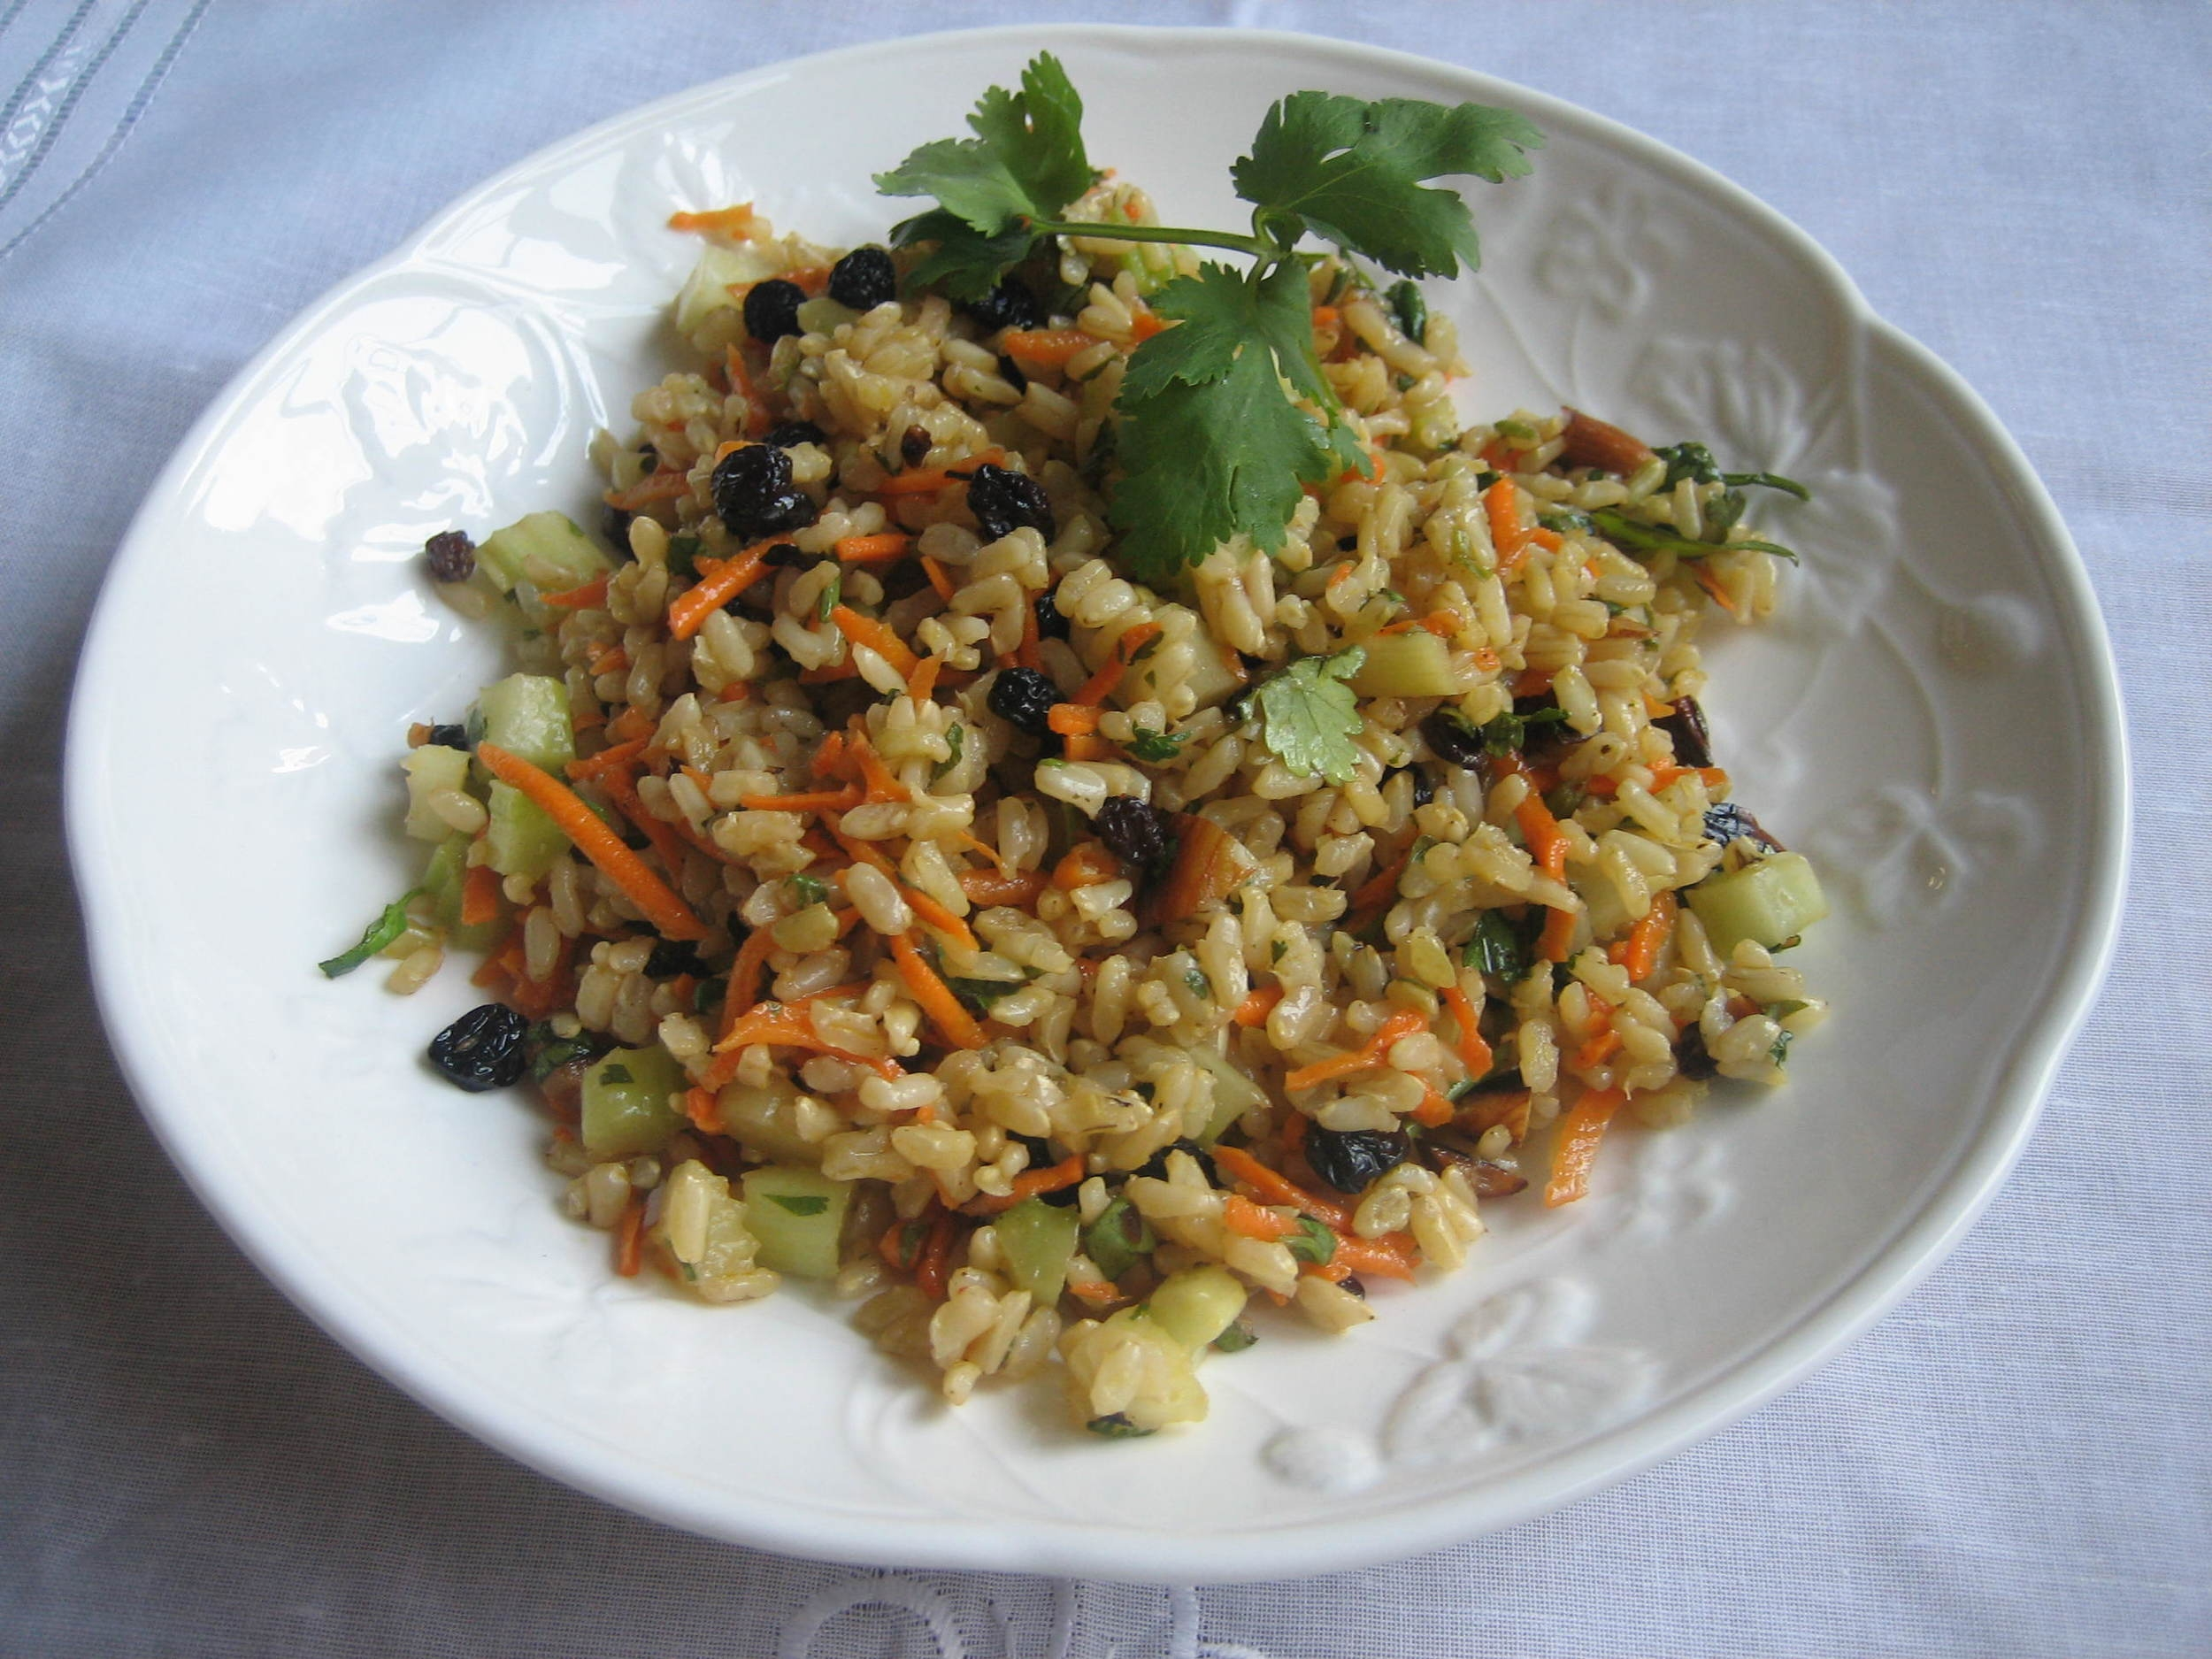 drtrishaboetto carrots, currants and brown rice